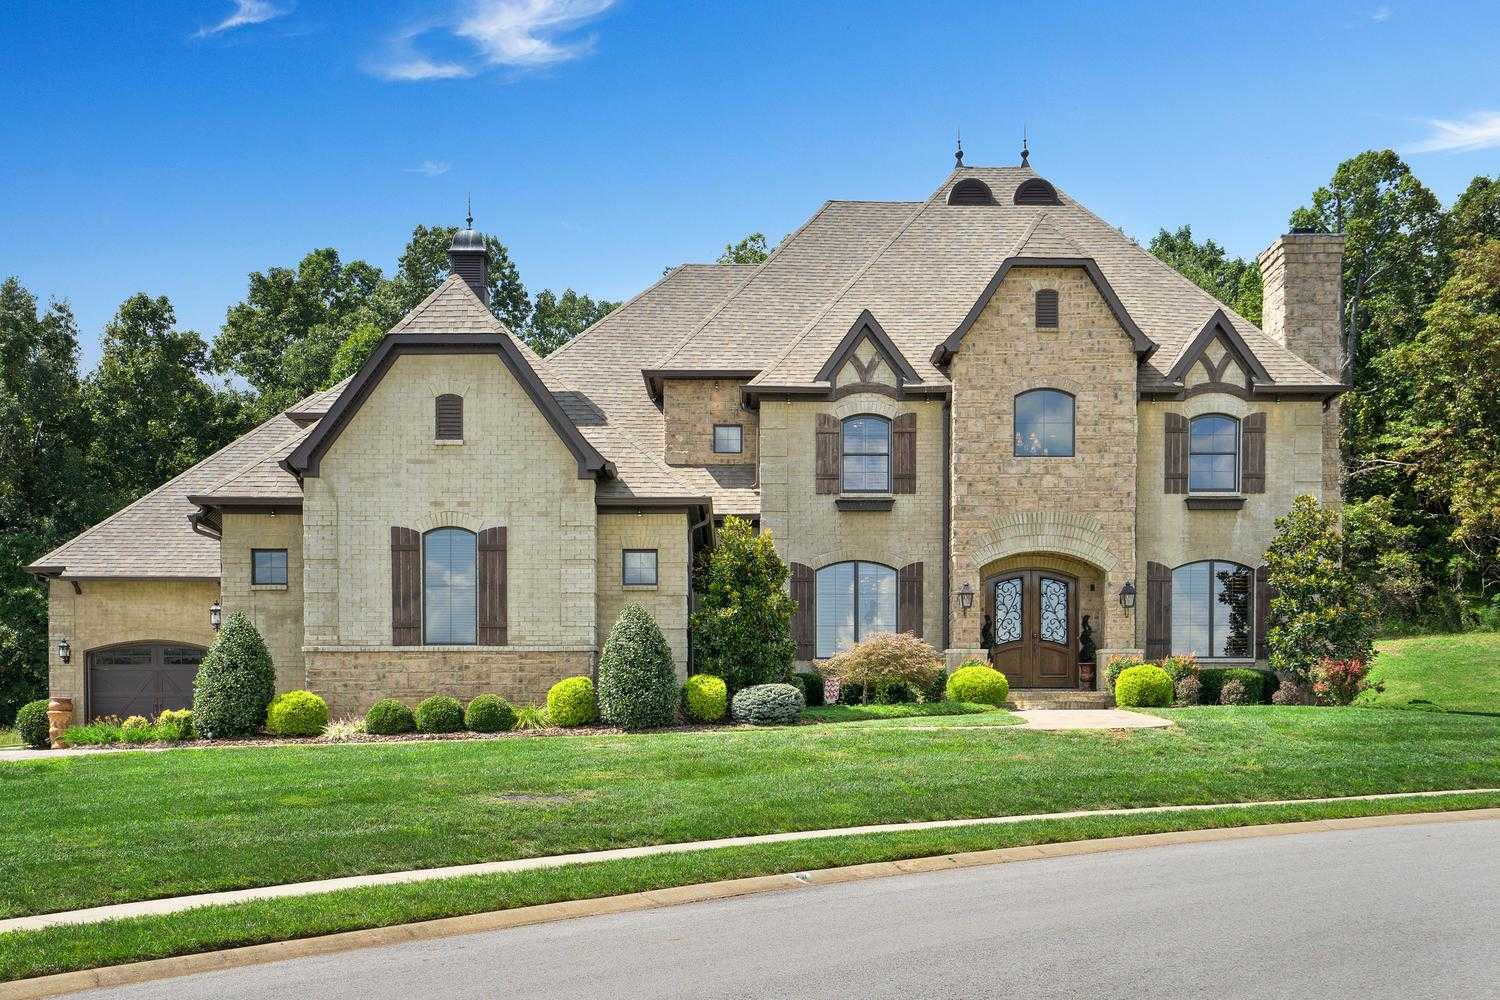 $919,000 - 5Br/6Ba -  for Sale in Stones Manor, Clarksville